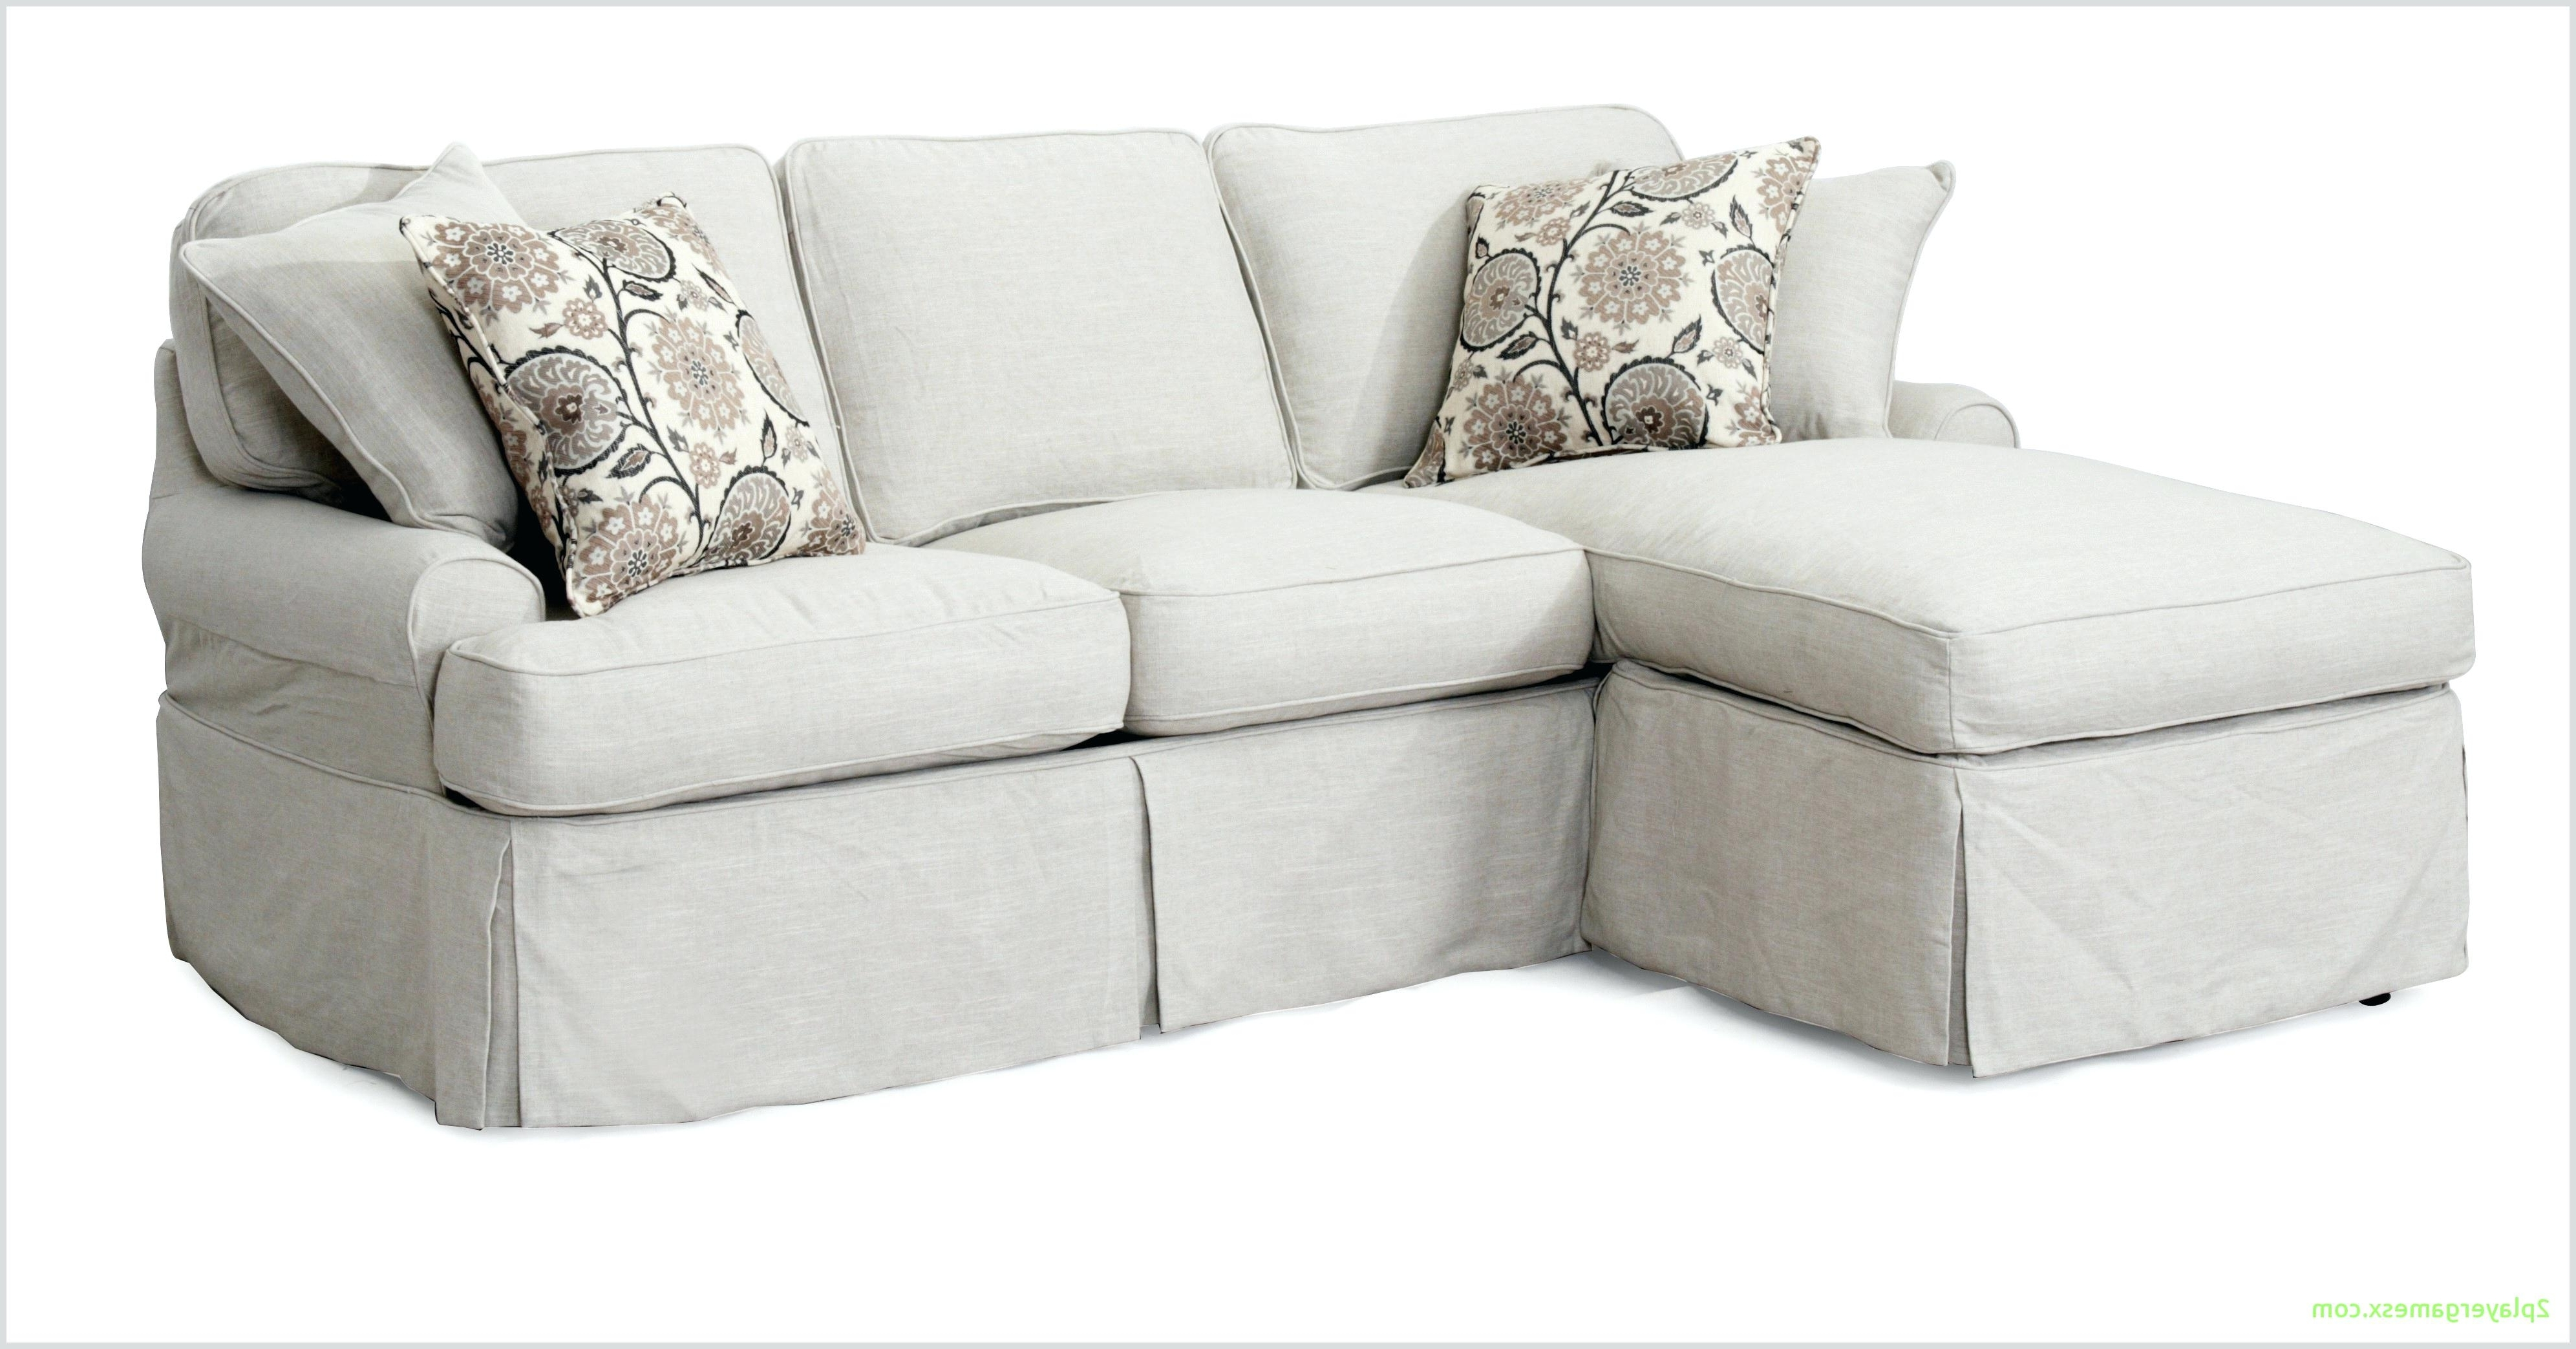 Slipcover For Sectional Slipcovers Couches With Recliners With Regard To Widely Used Chaise Slipcovers (View 10 of 15)